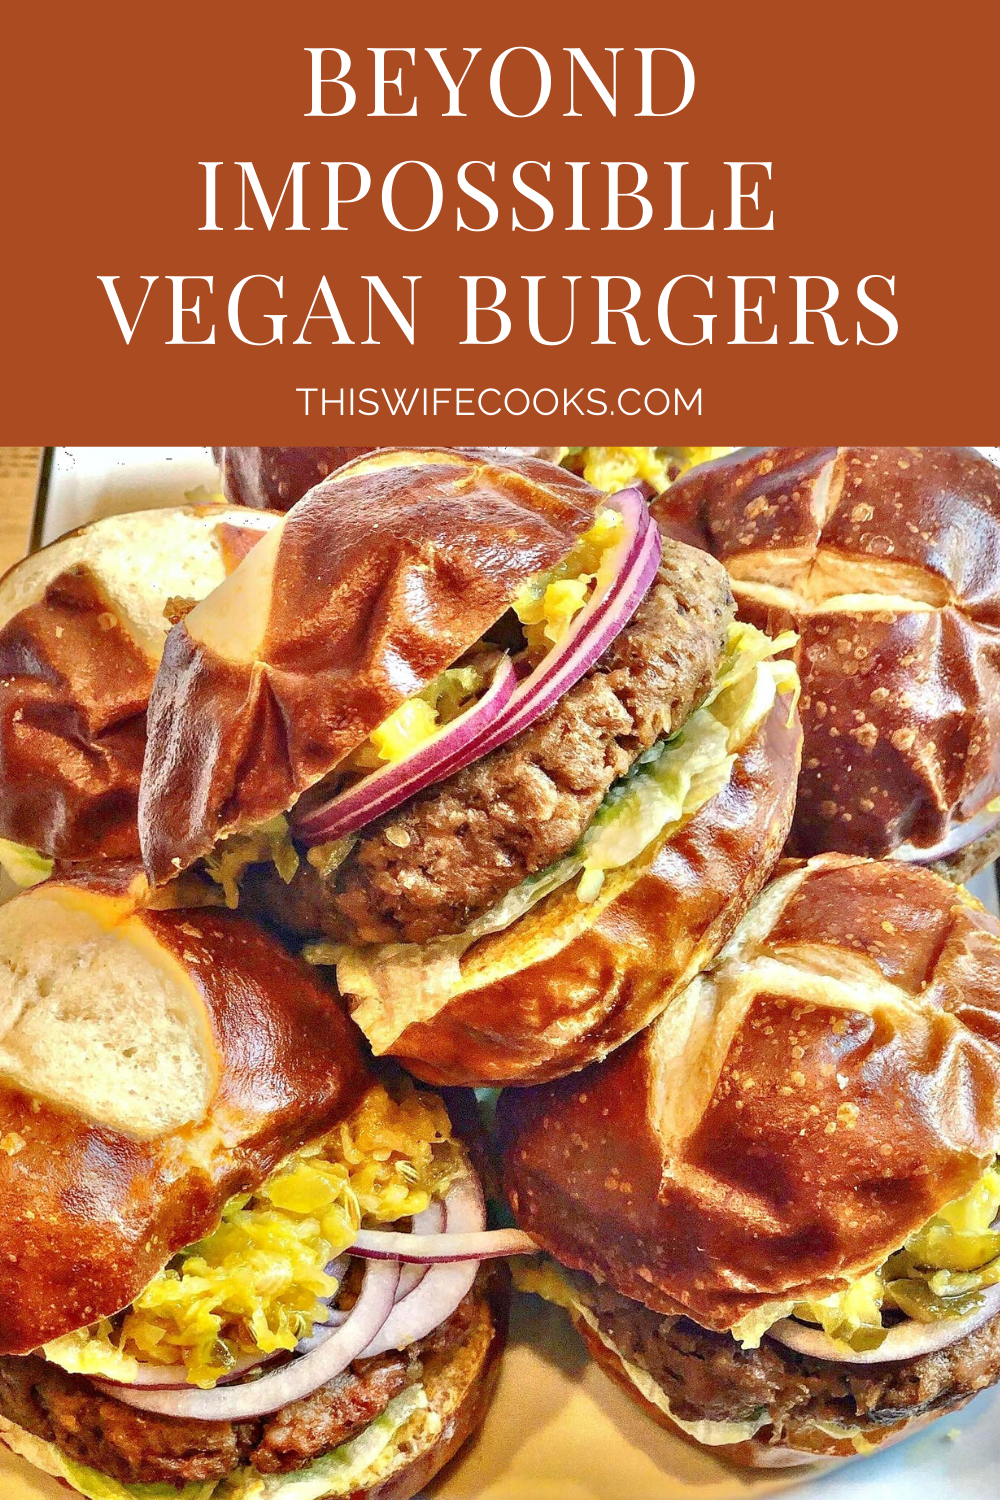 Beyond Impossible Vegan Burgers and Sliders - This recipe yields 6 thick pub-style burgers or 12 hearty sliders. Perfect for cookouts or tailgating, these 100% plant-based burgers will satisfy even the most hardcore carnivores in the crowd. via @thiswifecooks